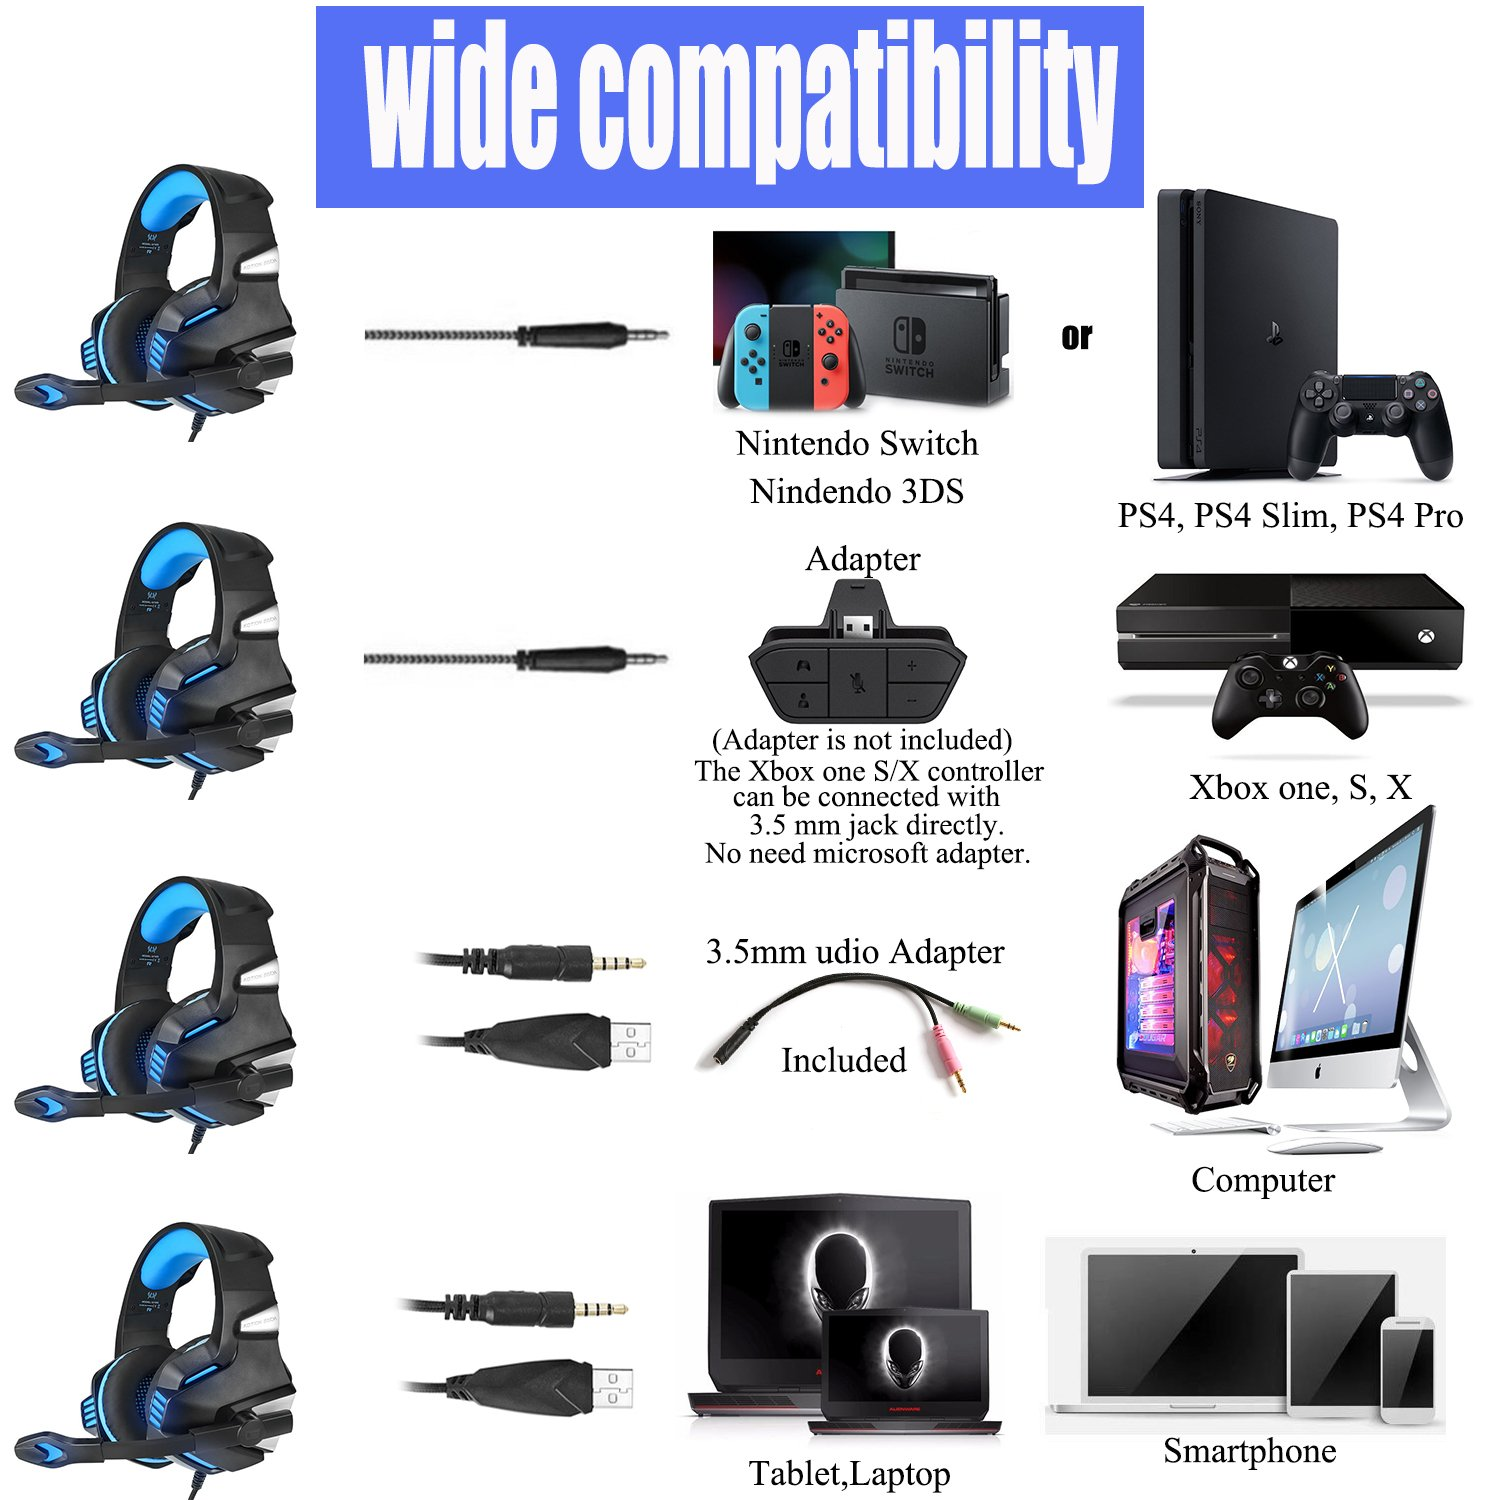 KJ-KayJI Gaming Headset for PS4 Xbox One Over Ear Gaming Headphones with Mic Stereo Bass Surround Noise Reduction,LED Lights and Volume Control for Laptop PC Mac IPad Computer Smartphones Xbox (Blue) by KJ-KayJI (Image #5)